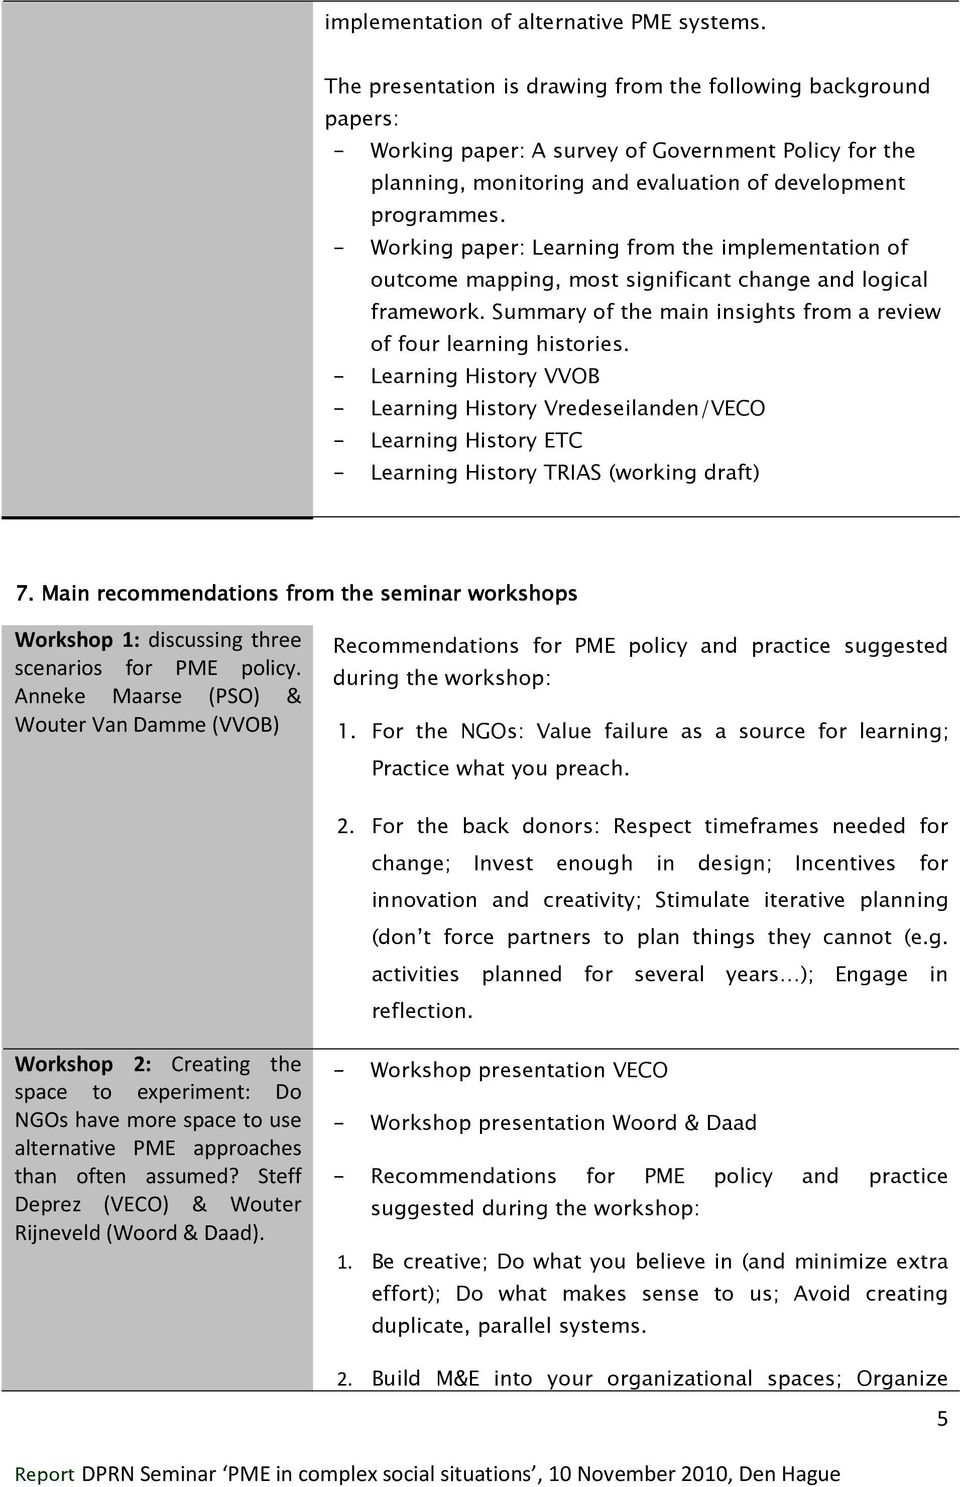 - Working paper: Learning from the implementation of outcome mapping, most significant change and logical framework. Summary of the main insights from a review of four learning histories.